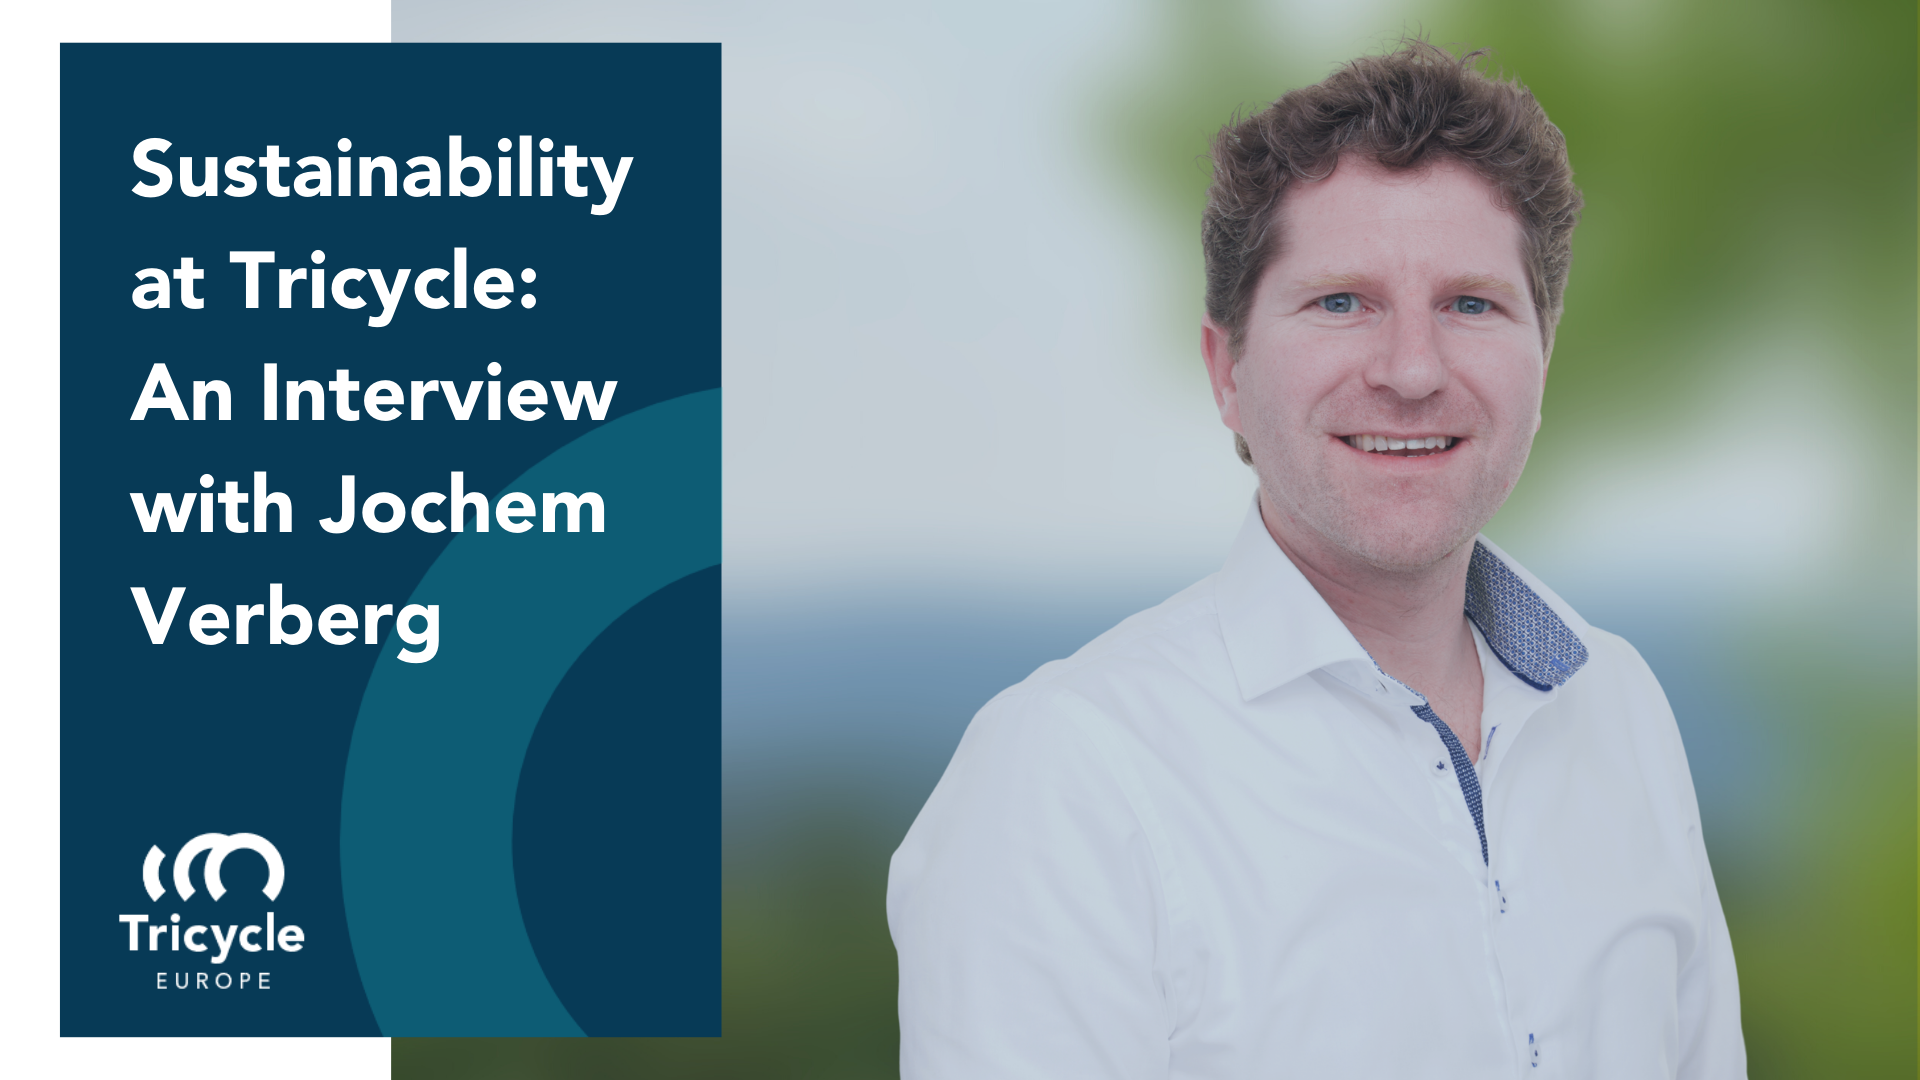 Sustainability at Tricycle: An Interview with Jochem Verberg